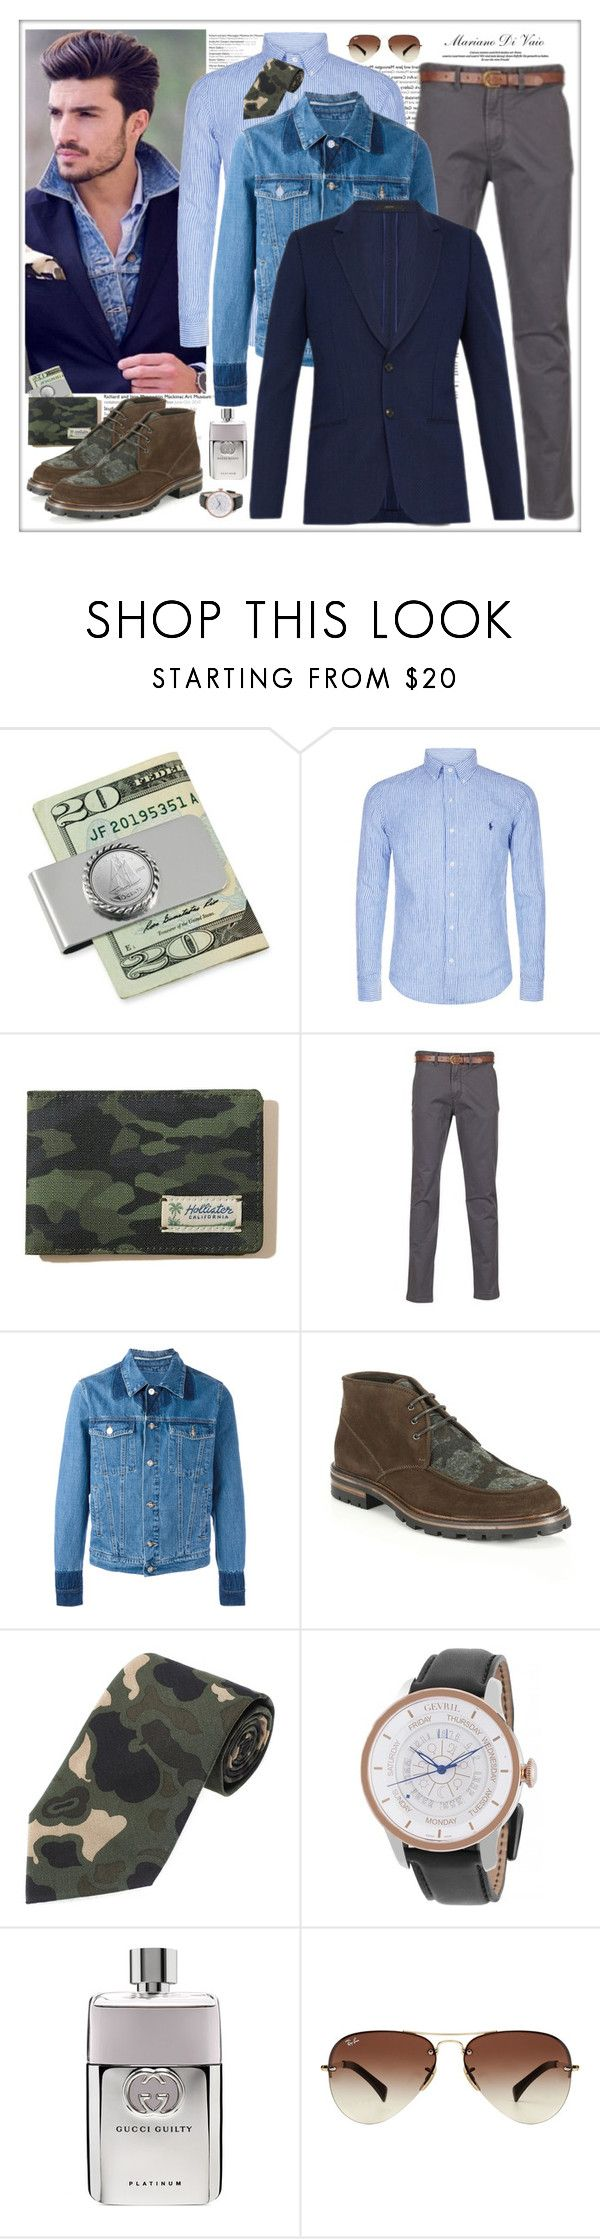 """""""Casual, Well Dressed you have to make ONE outfit as similar as you can to one of my ones that you can find on!"""" by vaniasb152 ❤ liked on Polyvore featuring Polo Ralph Lauren, Hollister Co., Kenzo, Aquatalia by Marvin K., Gevril, Gucci, Ray-Ban, Paul Smith, men's fashion and menswear"""